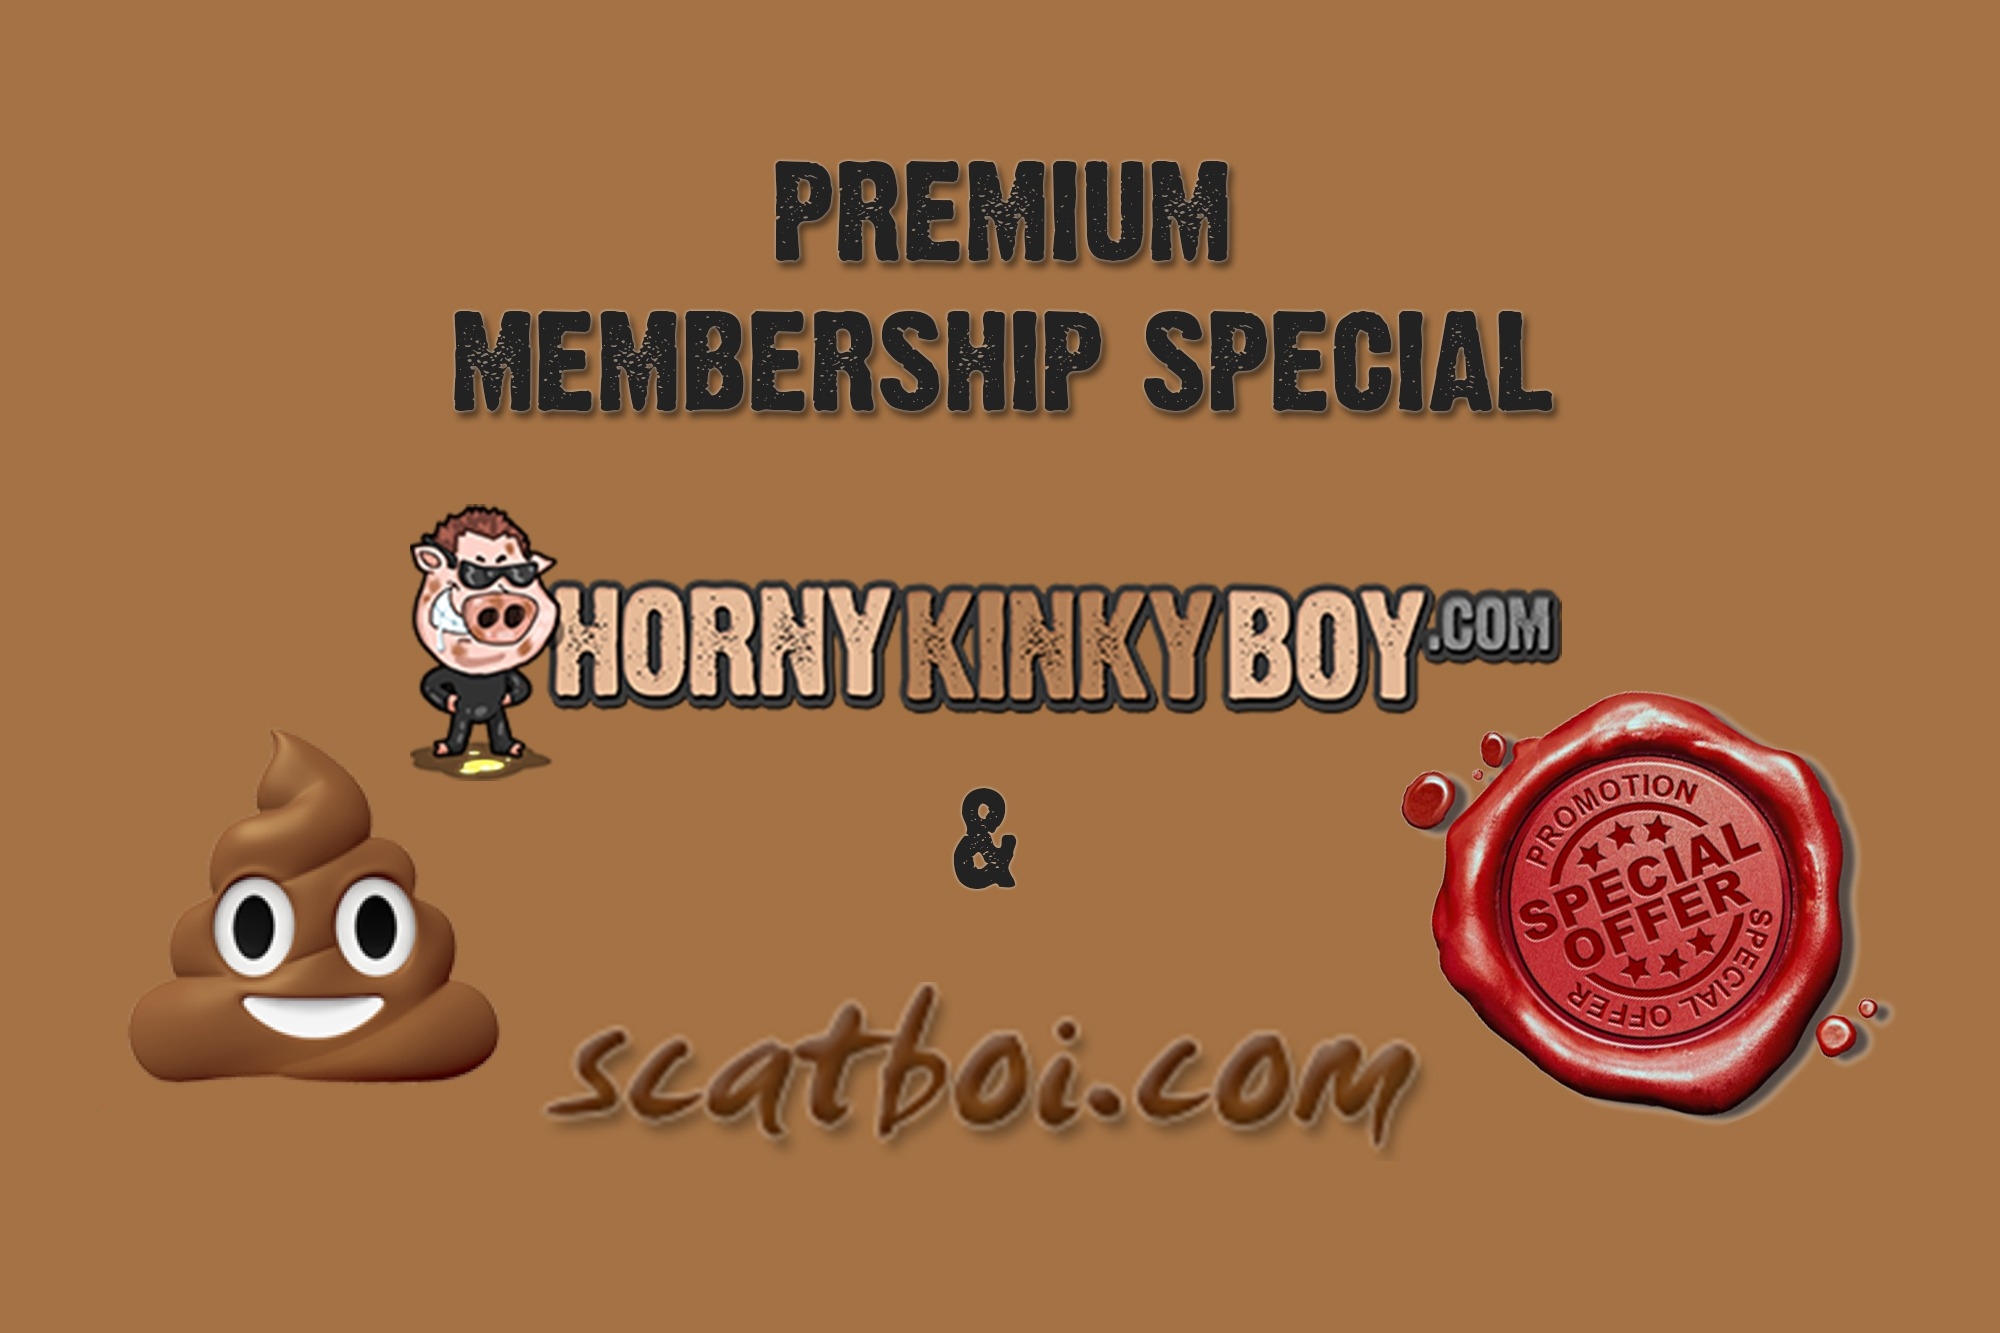 90 Days Non-Recurring HornyKinkyBoy And Scatboi Membership Special